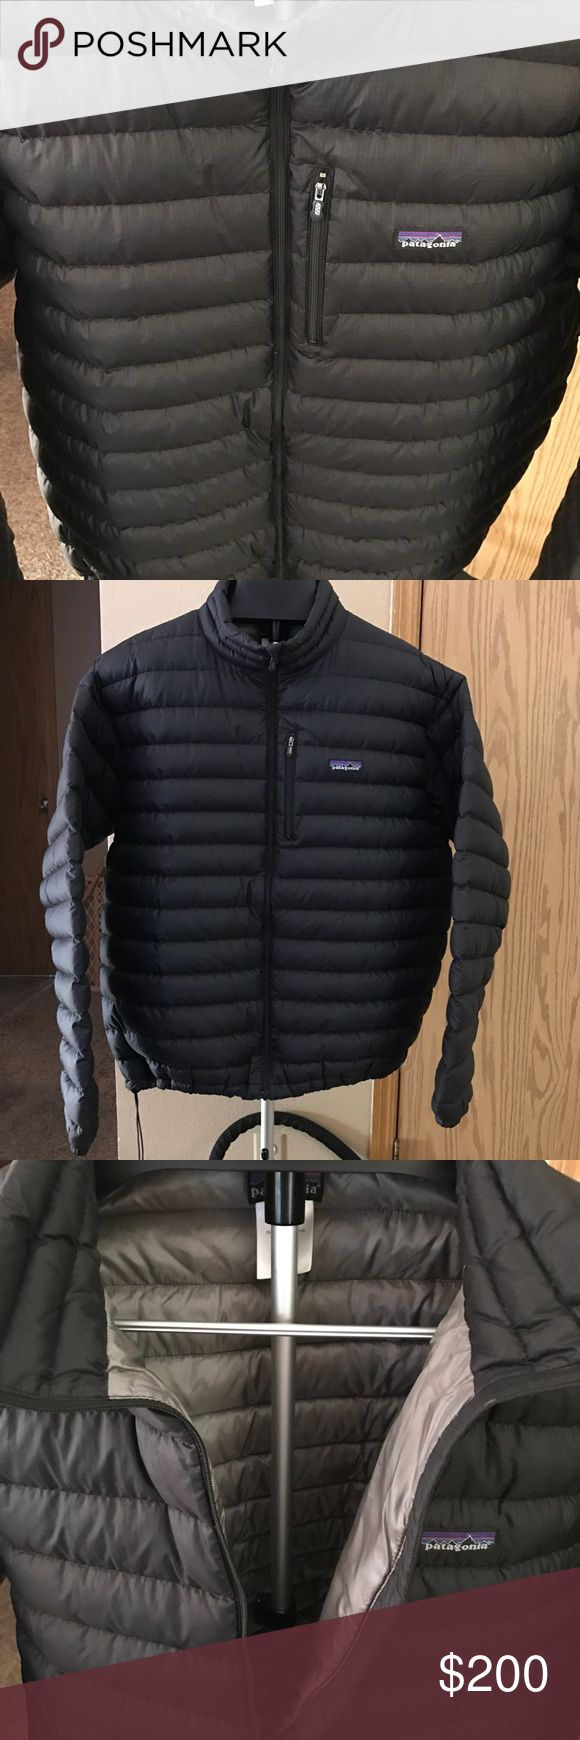 Patagonia puffer jacket Patagonia puffer jacket. Super comfy and warm. Goose down. Patagonia Jackets & Coats Puffers